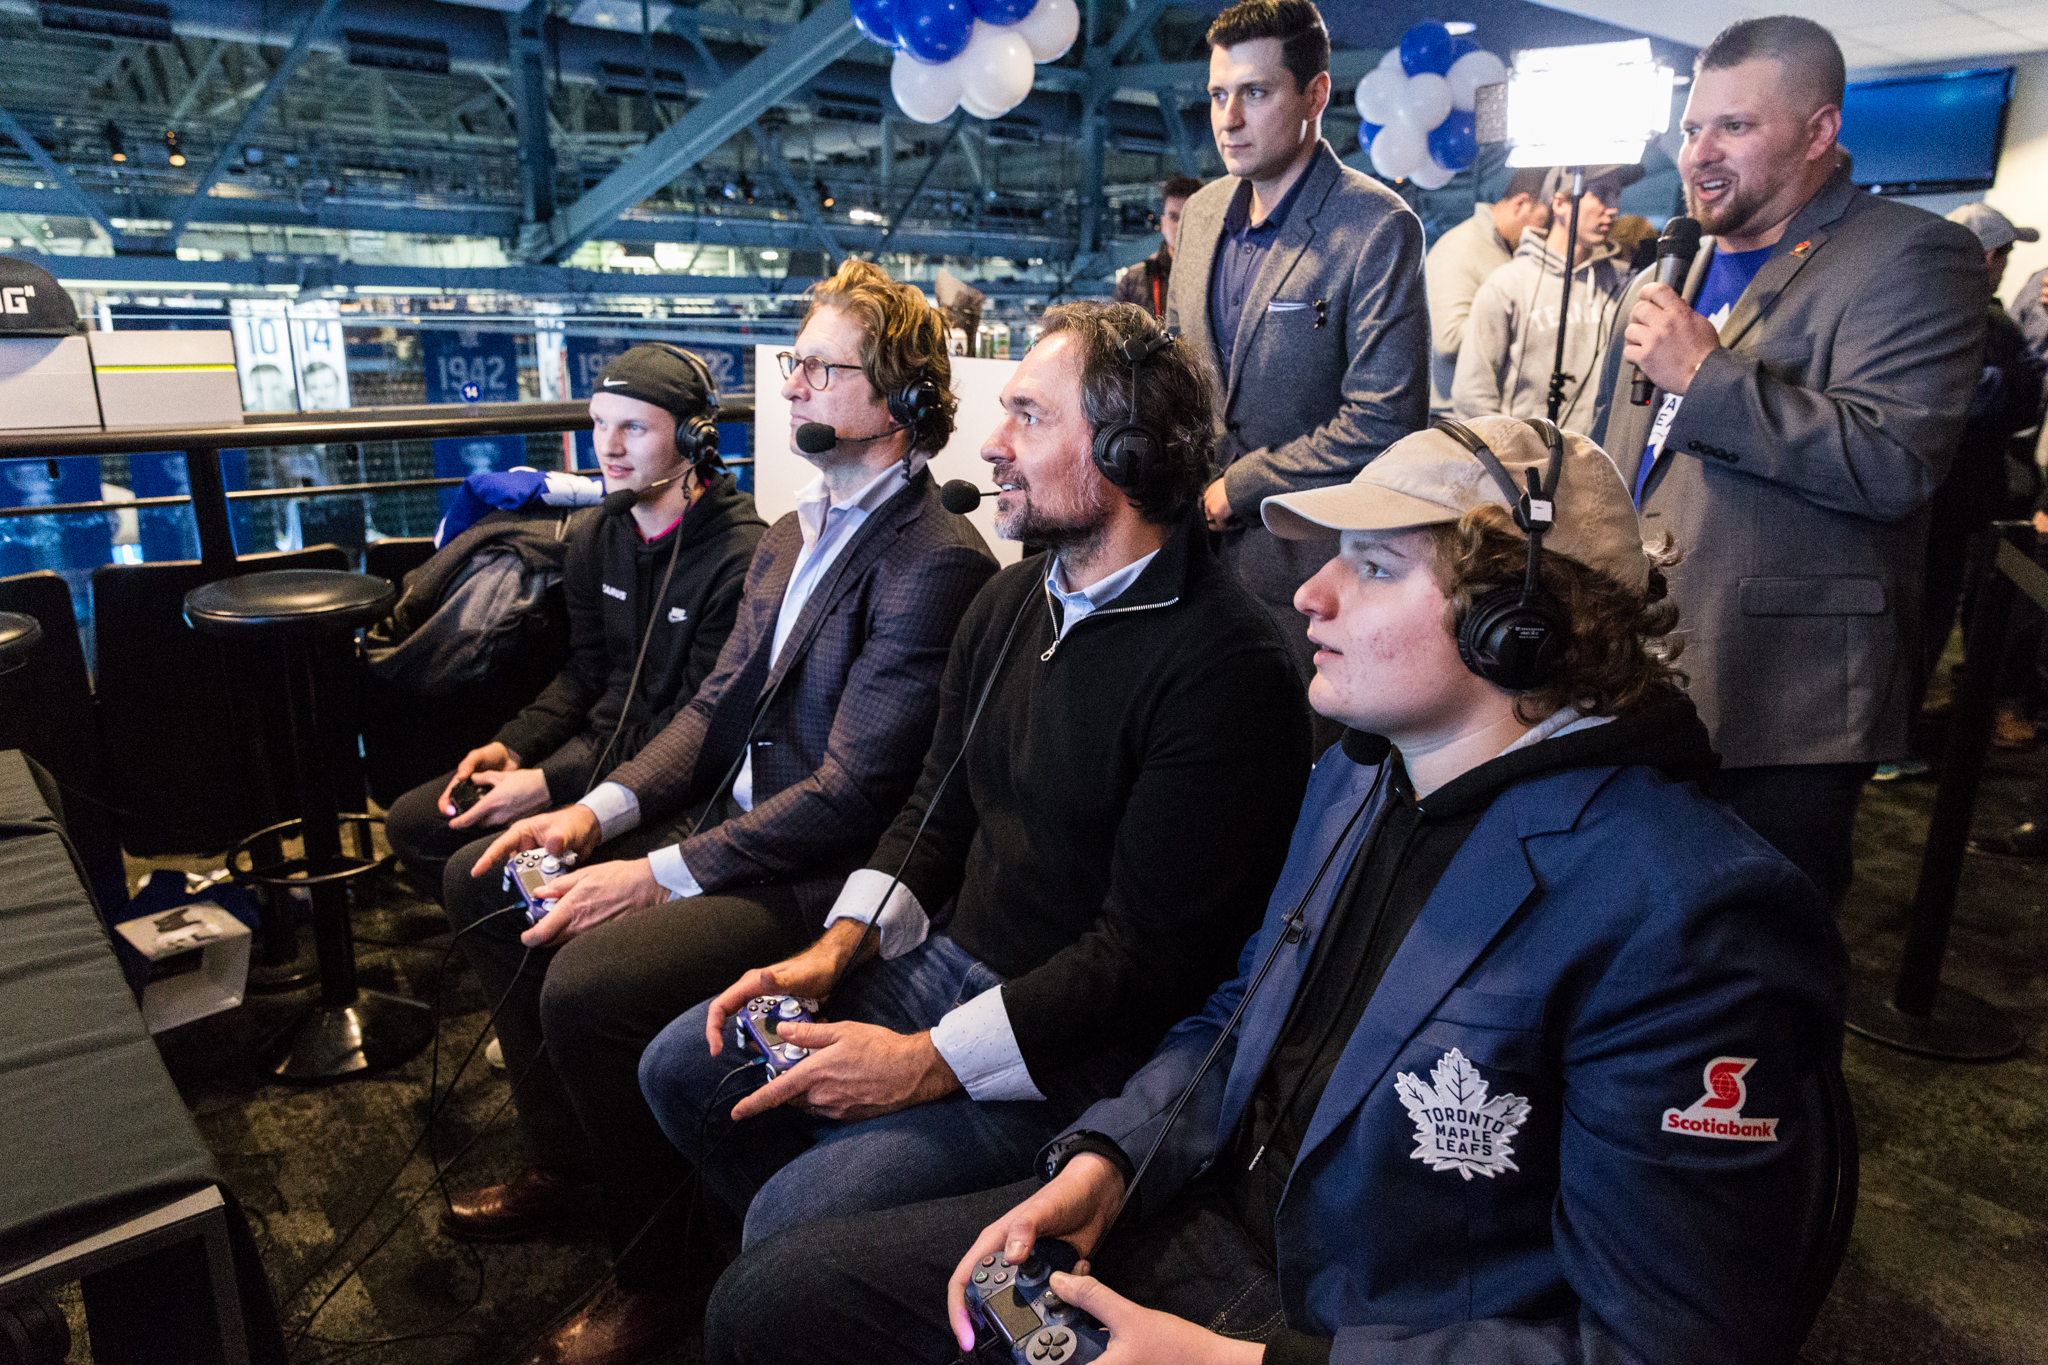 The Leafs Gaming League